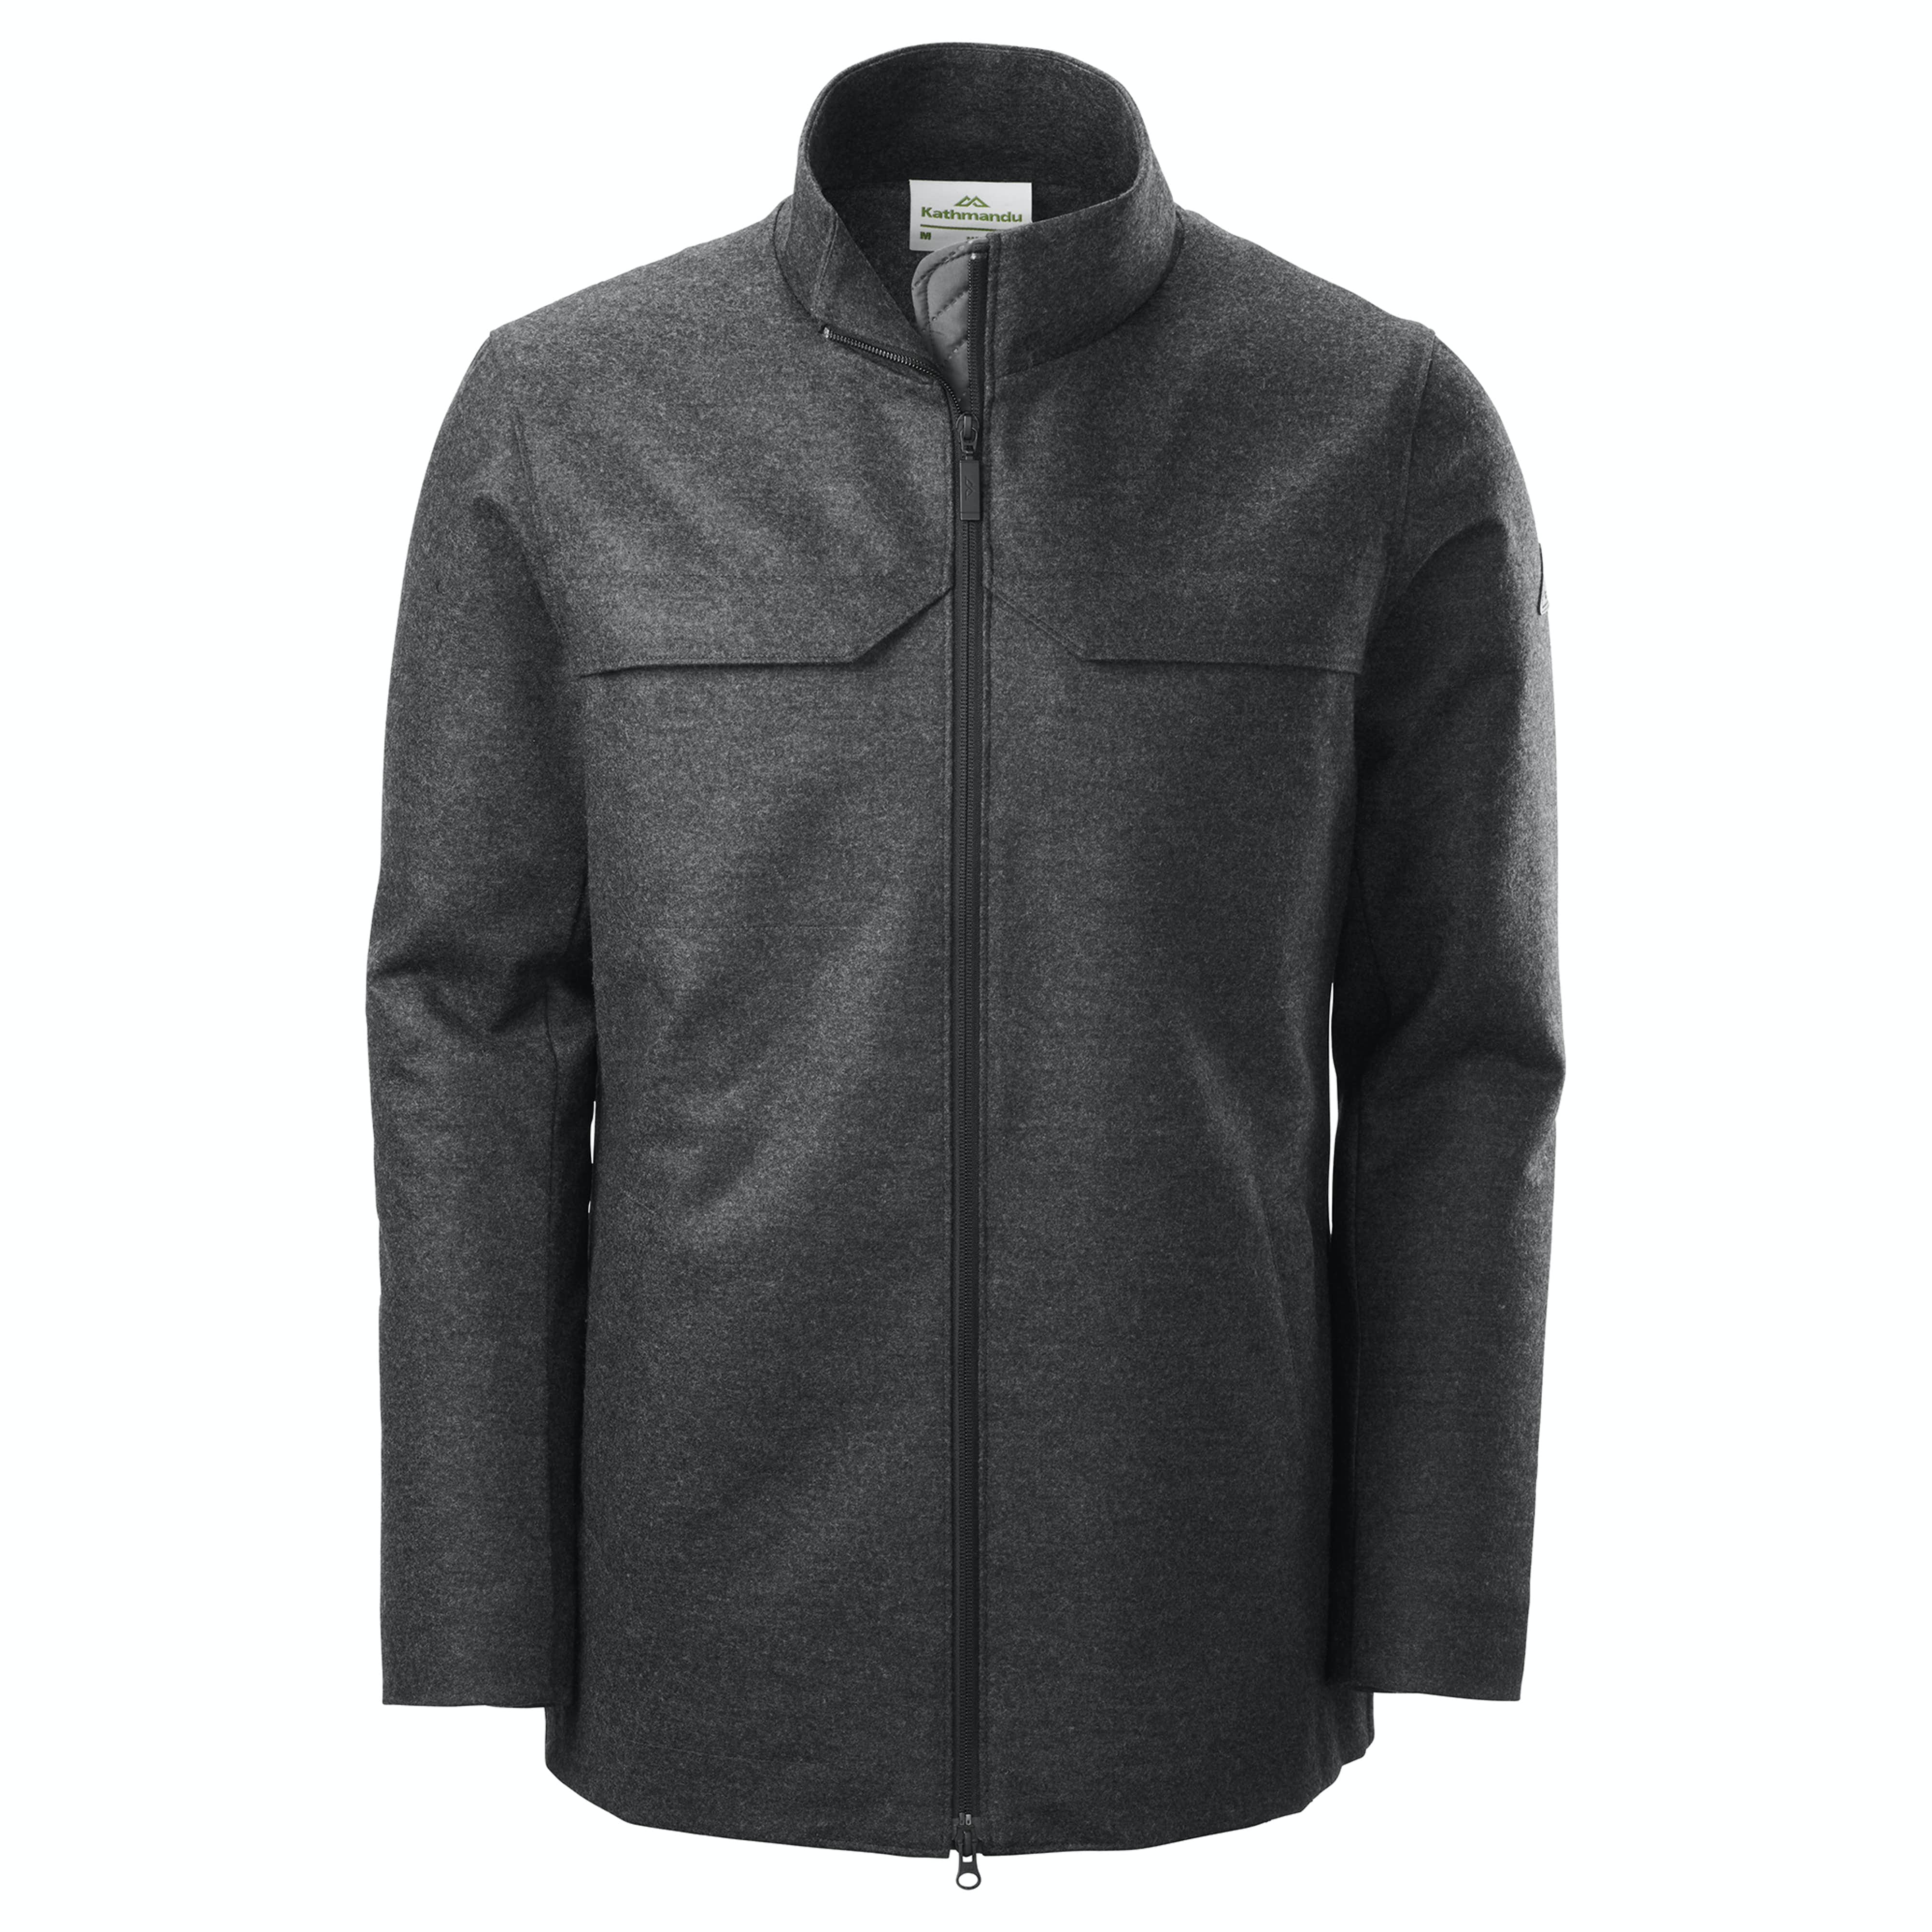 dafc856e8c Mens Jackets for Sale Online